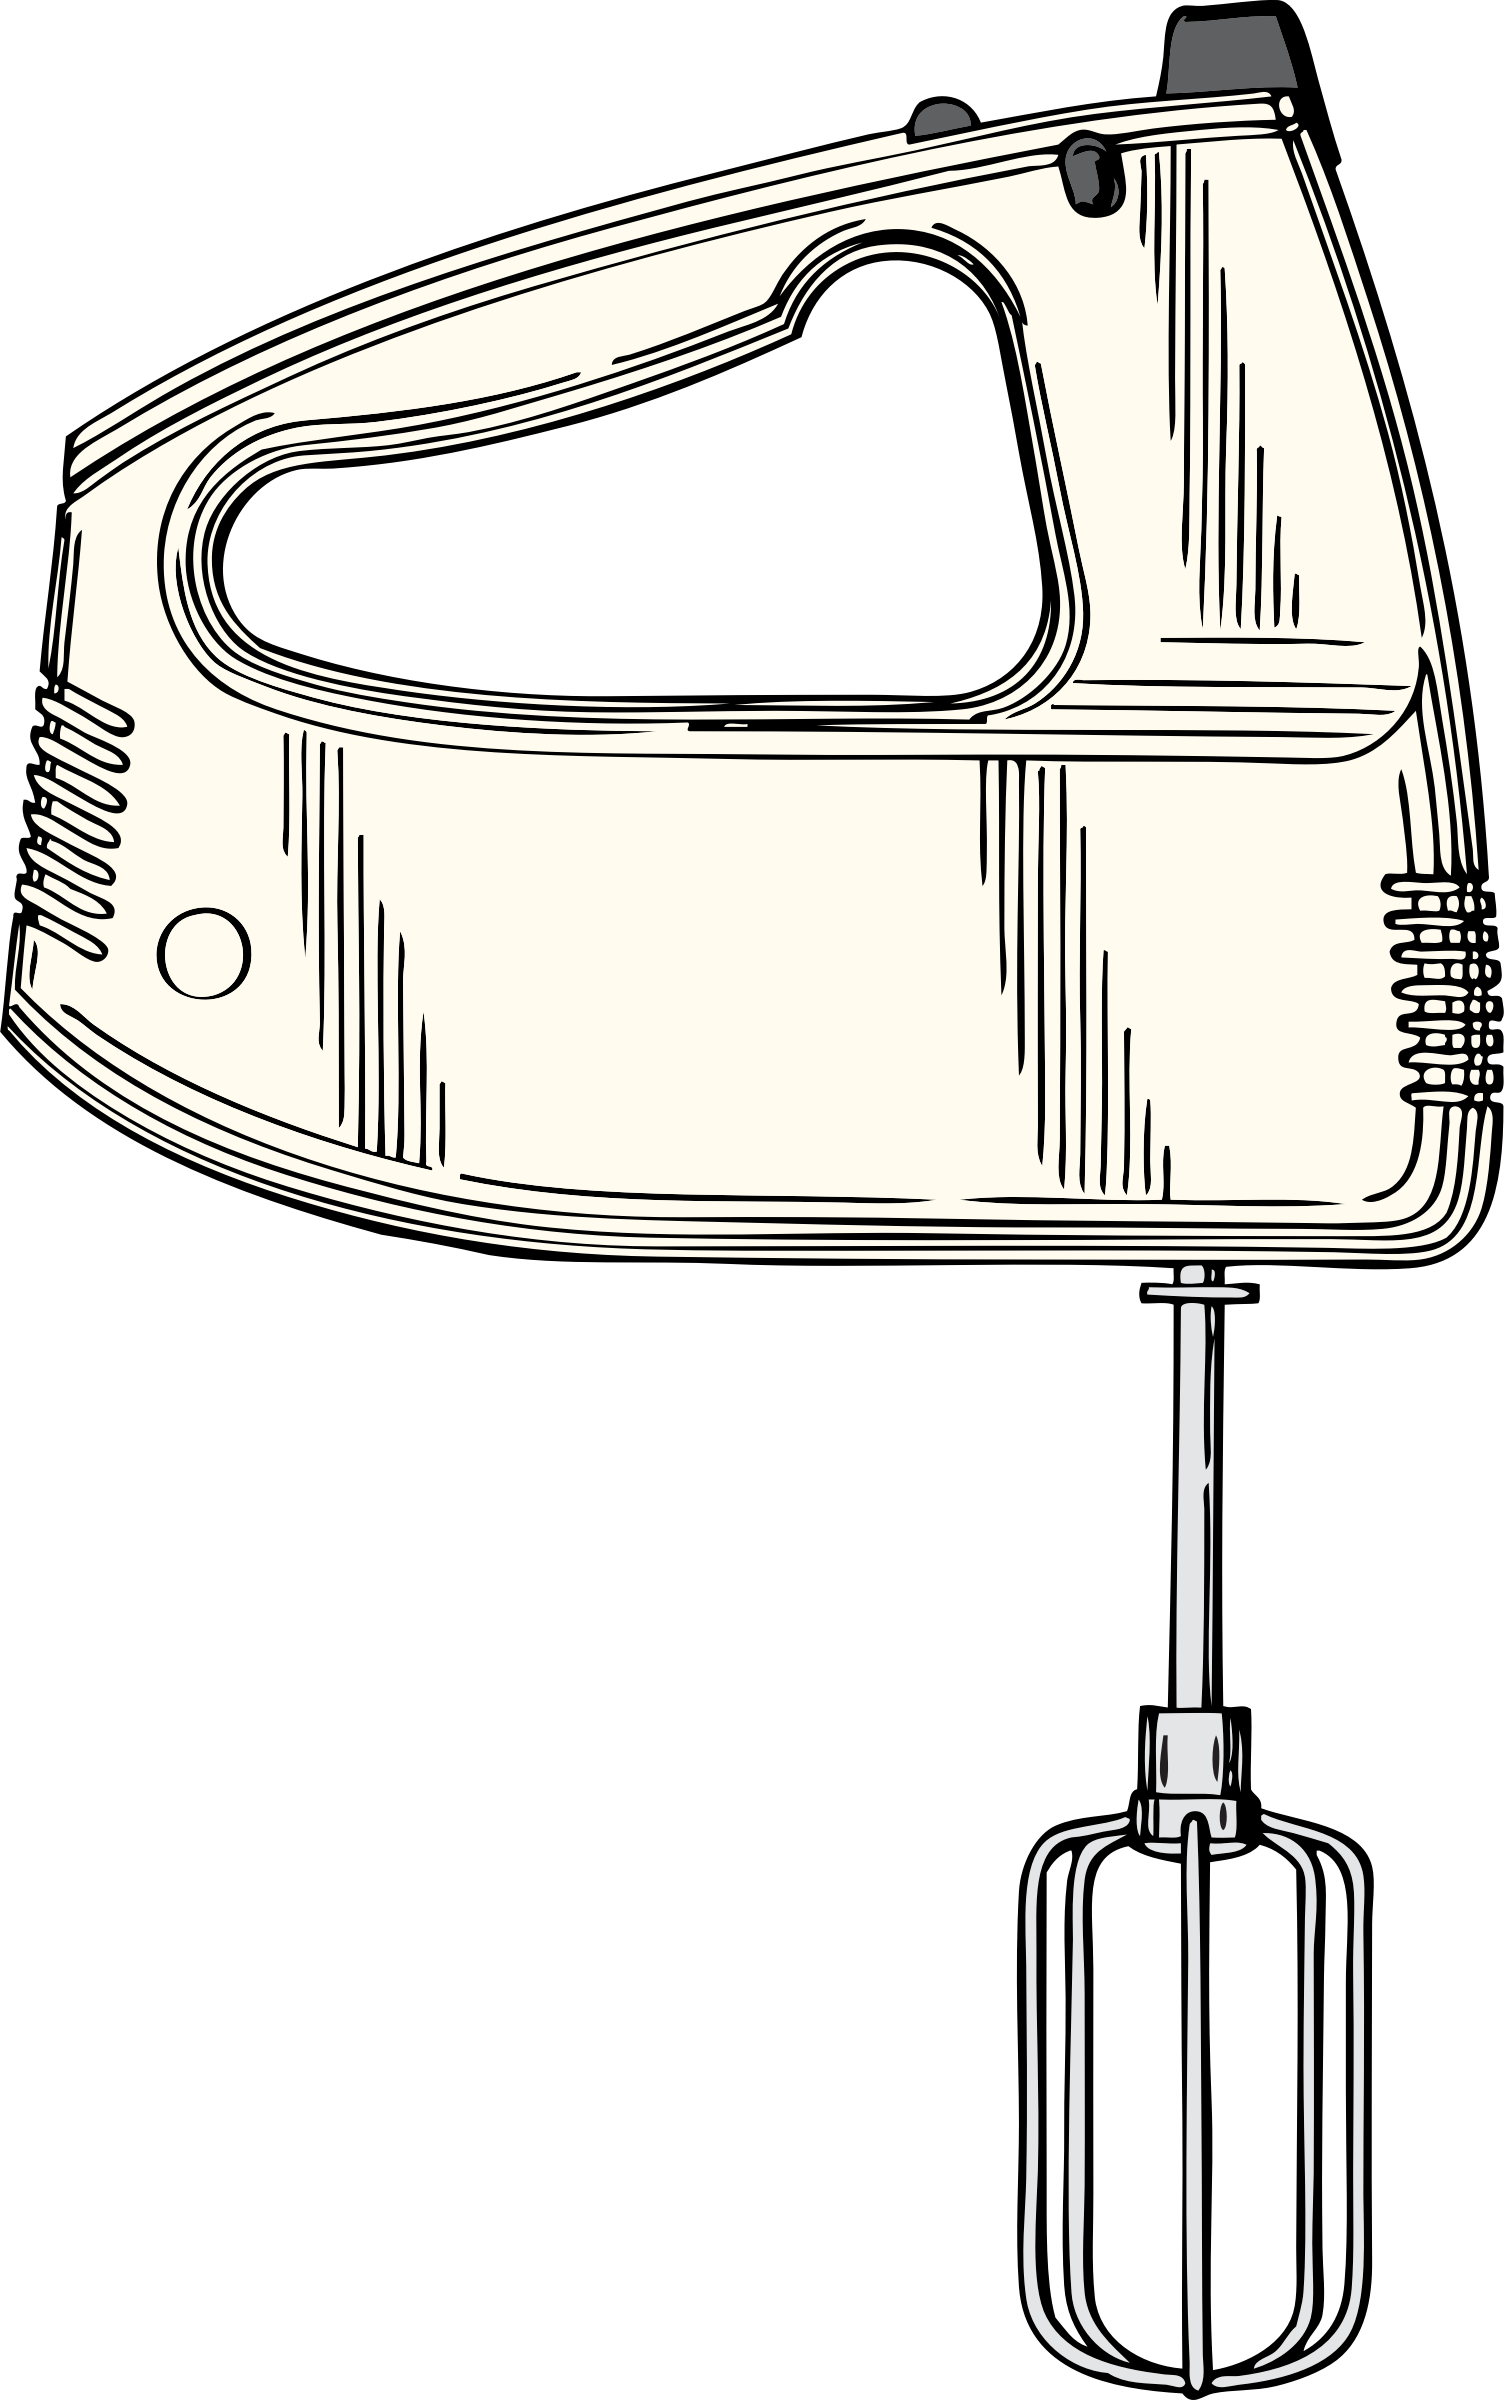 Hand mixer icons png. Kitchen clipart blender